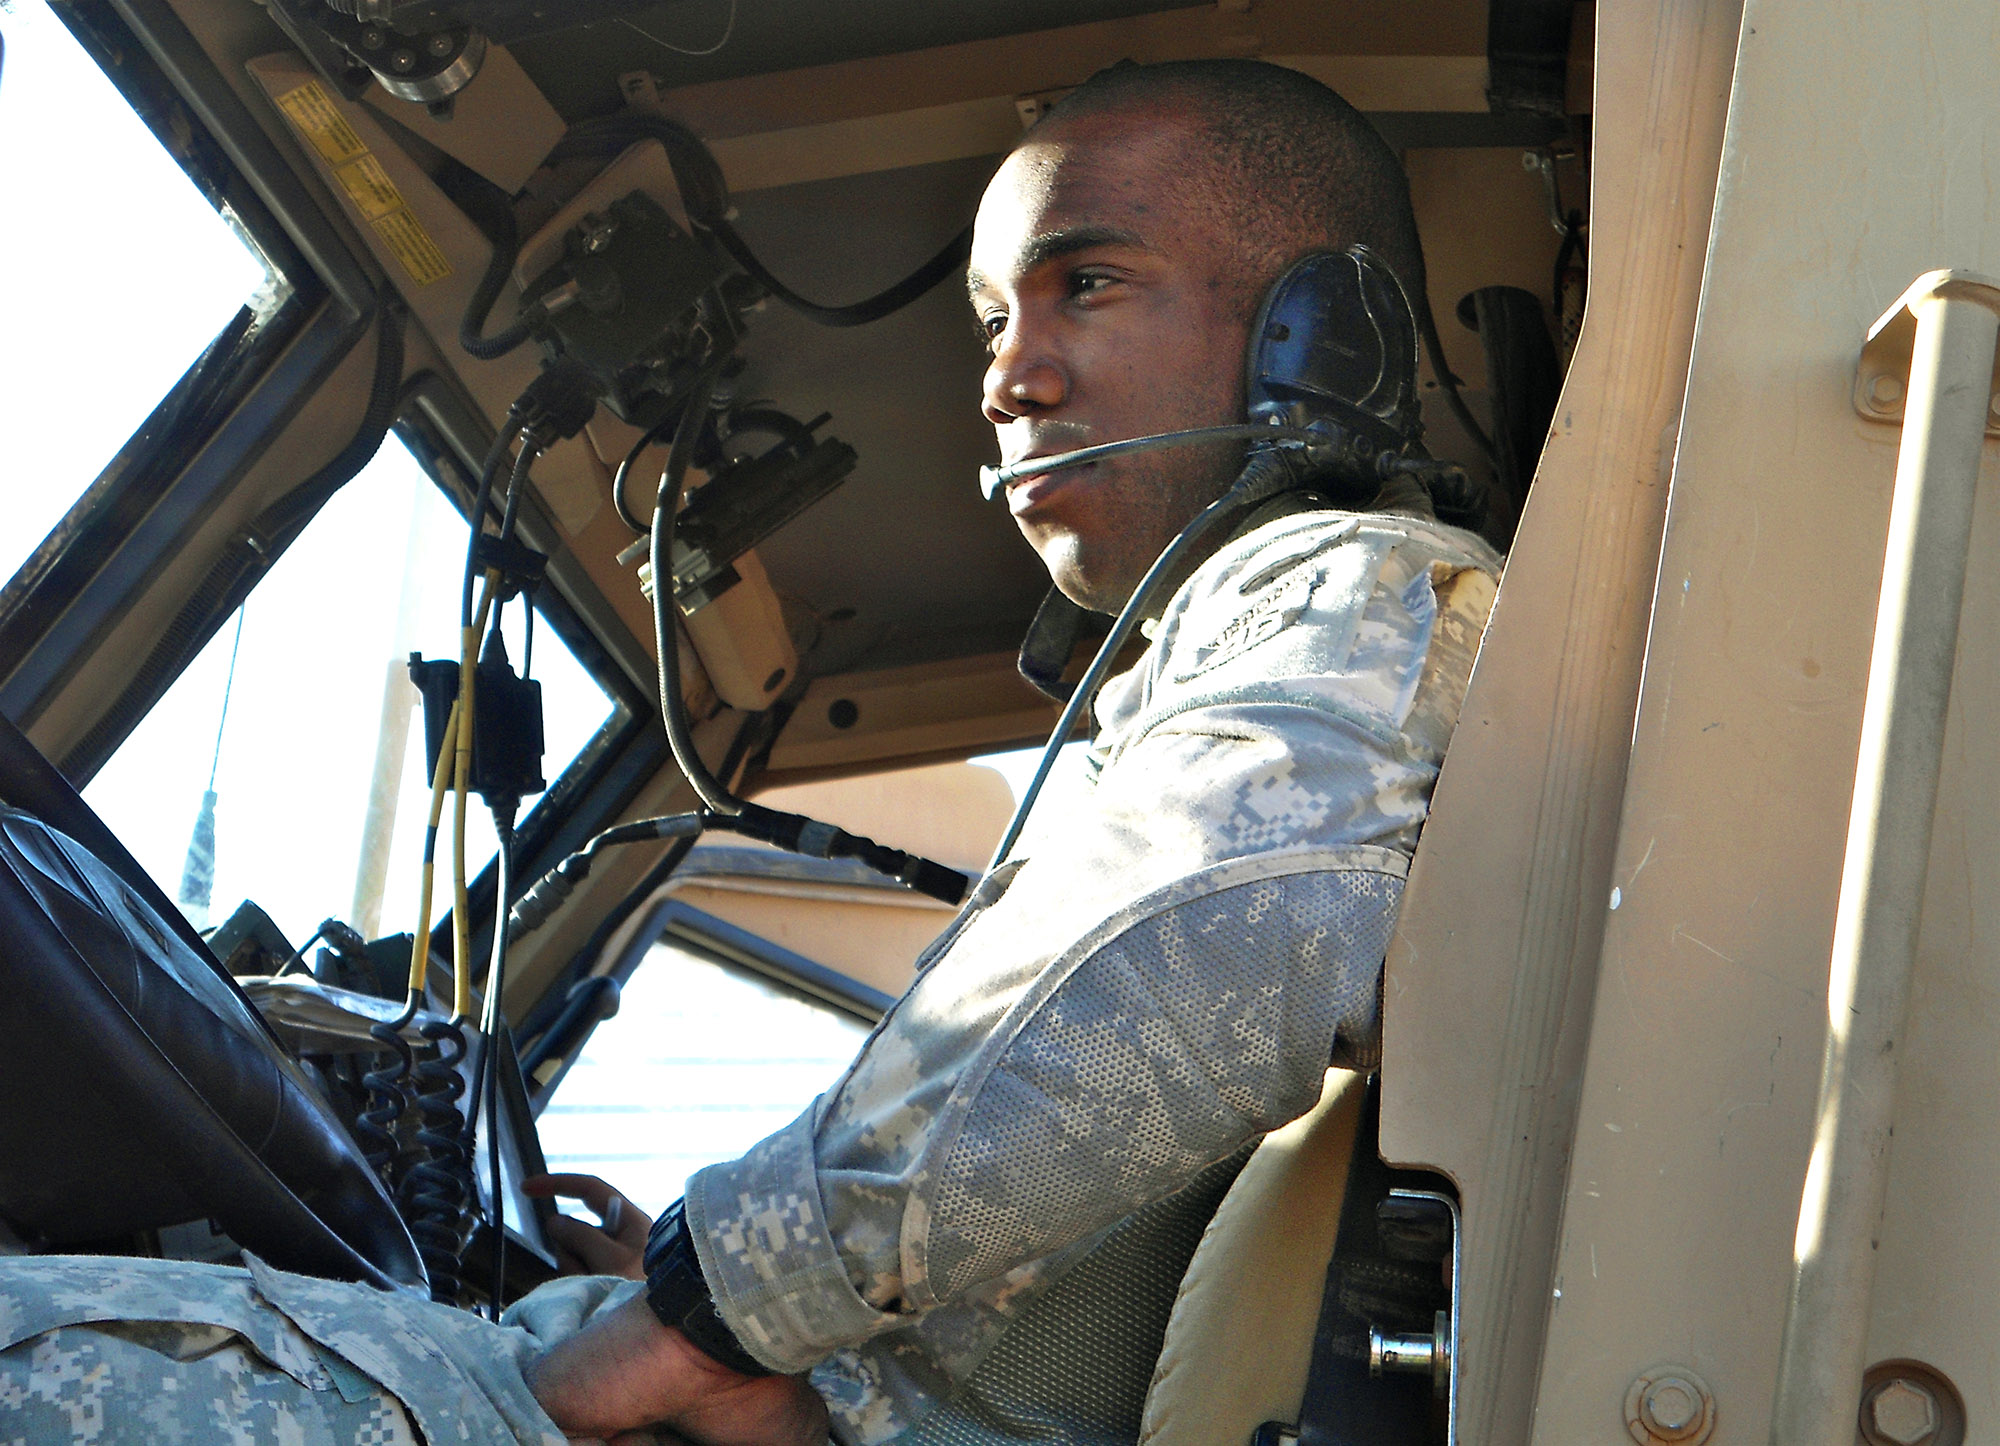 U.S. Army Specialist David E. Hickman, 23, of Greensboro, North Carolina, assigned to the 2nd Battalion, 325th Airborne Infantry Regiment, 2nd Brigade Combat Team, 82nd Airborne Division, based in Fort Bragg, North Carolina, died on November 14, 2011, in Baghdad, Iraq, from wounds suffered when insurgents detonated an improvised explosive device near his vehicle. He is survived by his wife Calli, parents David and Veronica, and brother Devon.